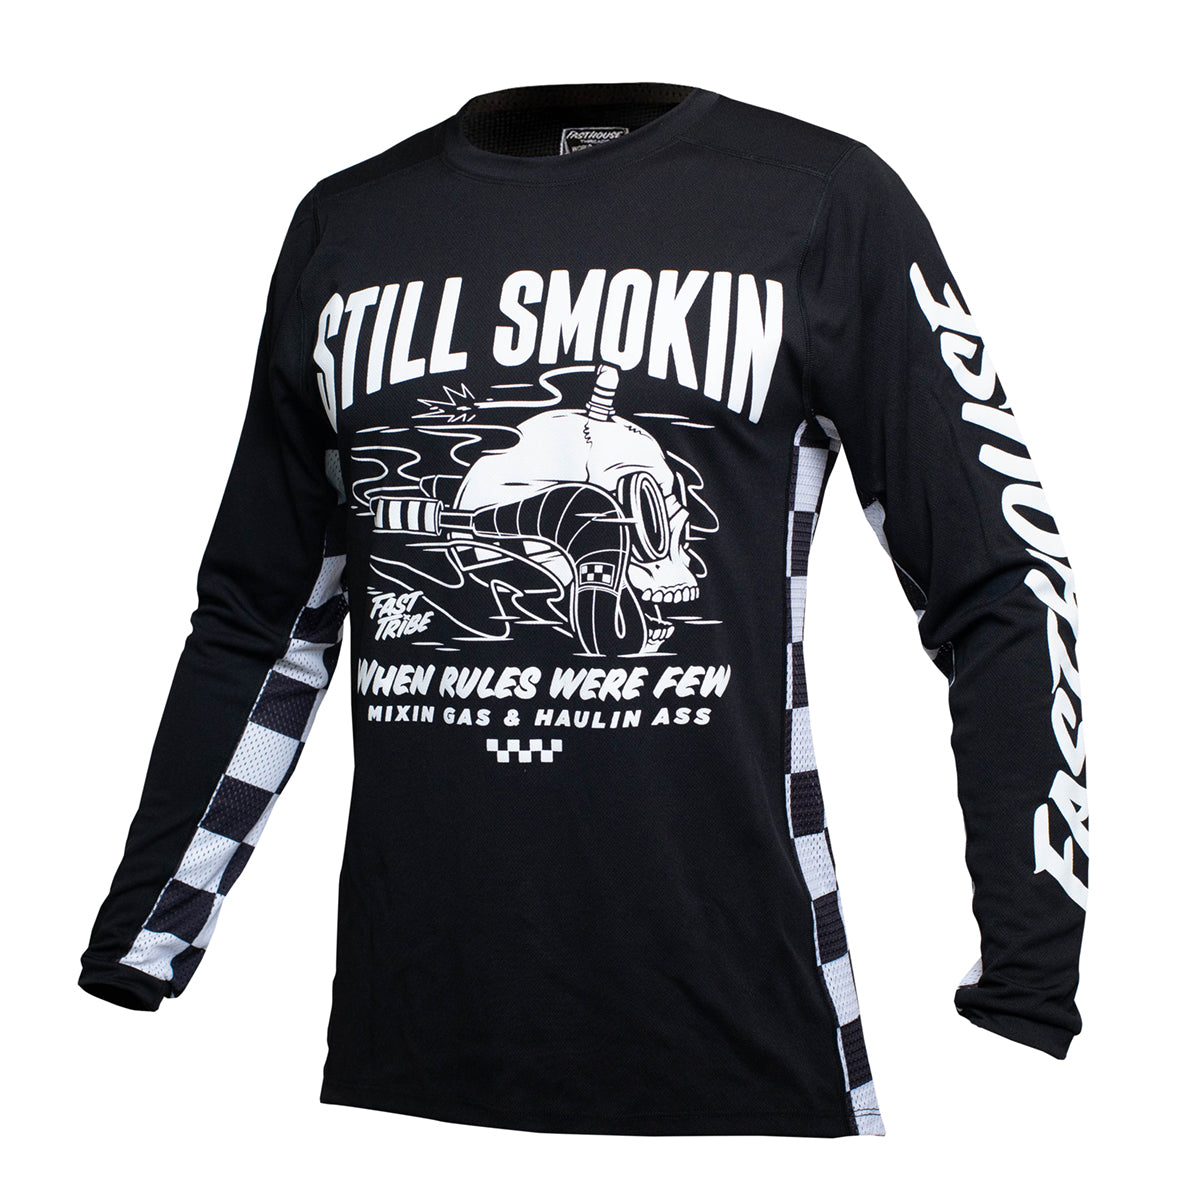 Still Smoking '20 Jersey - Black